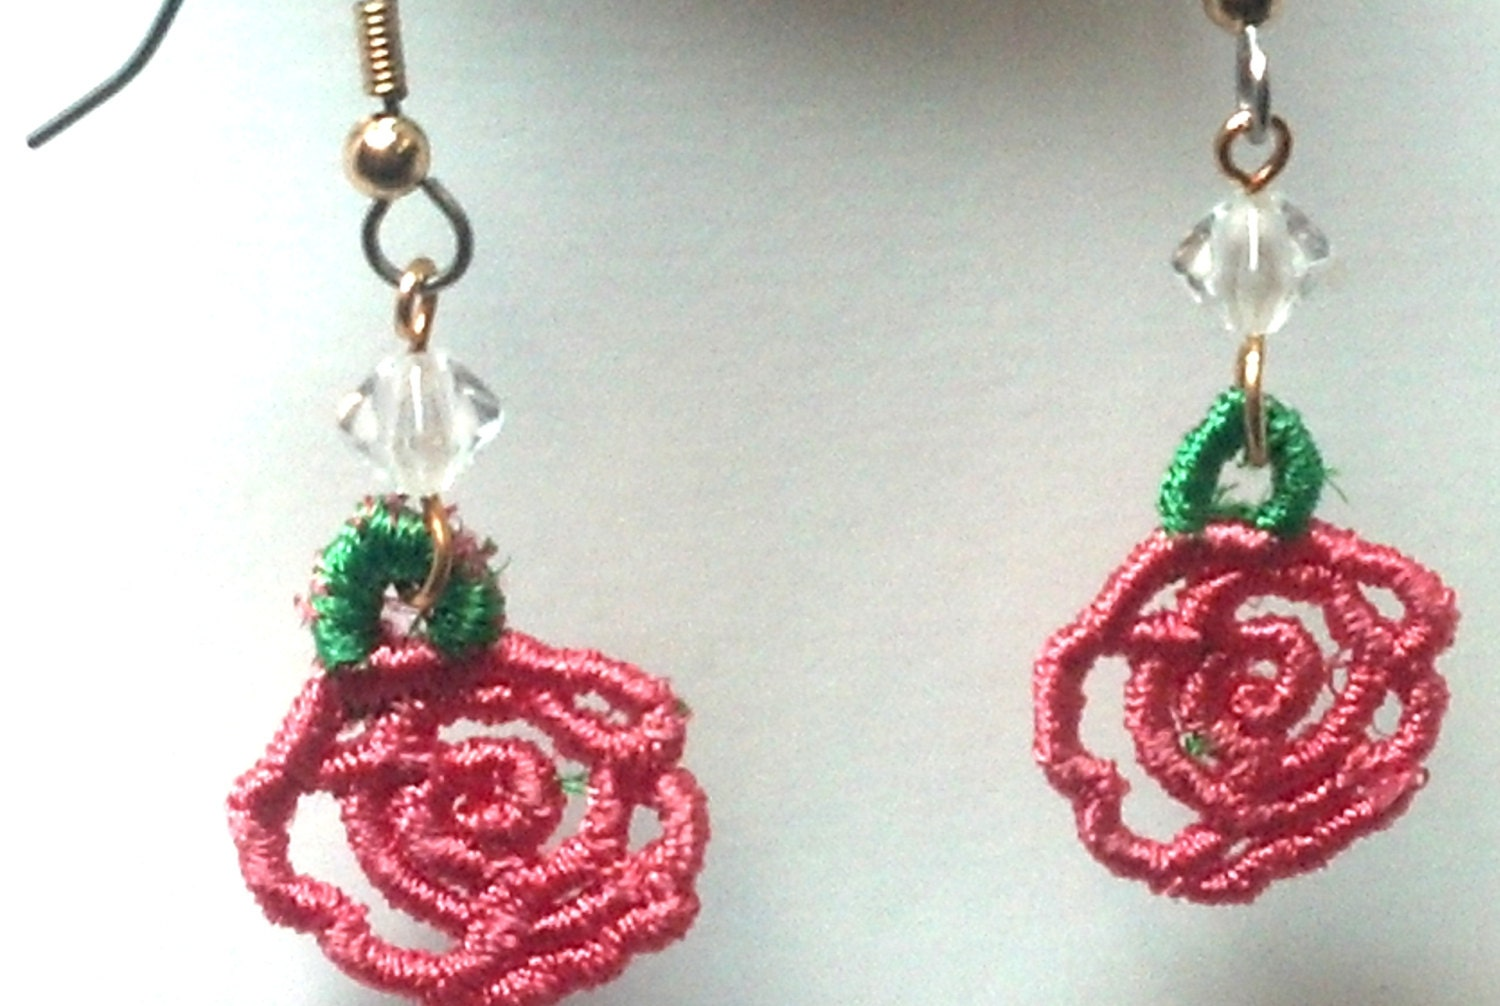 Pink Rose Earrings, flowers, flower earrings, earrings, jewelry for her, jewelry, handcrafted, handmade, online, Etsy, Embroidery, forever, forever gifts, love, valentines day, great gifts, anniversary,